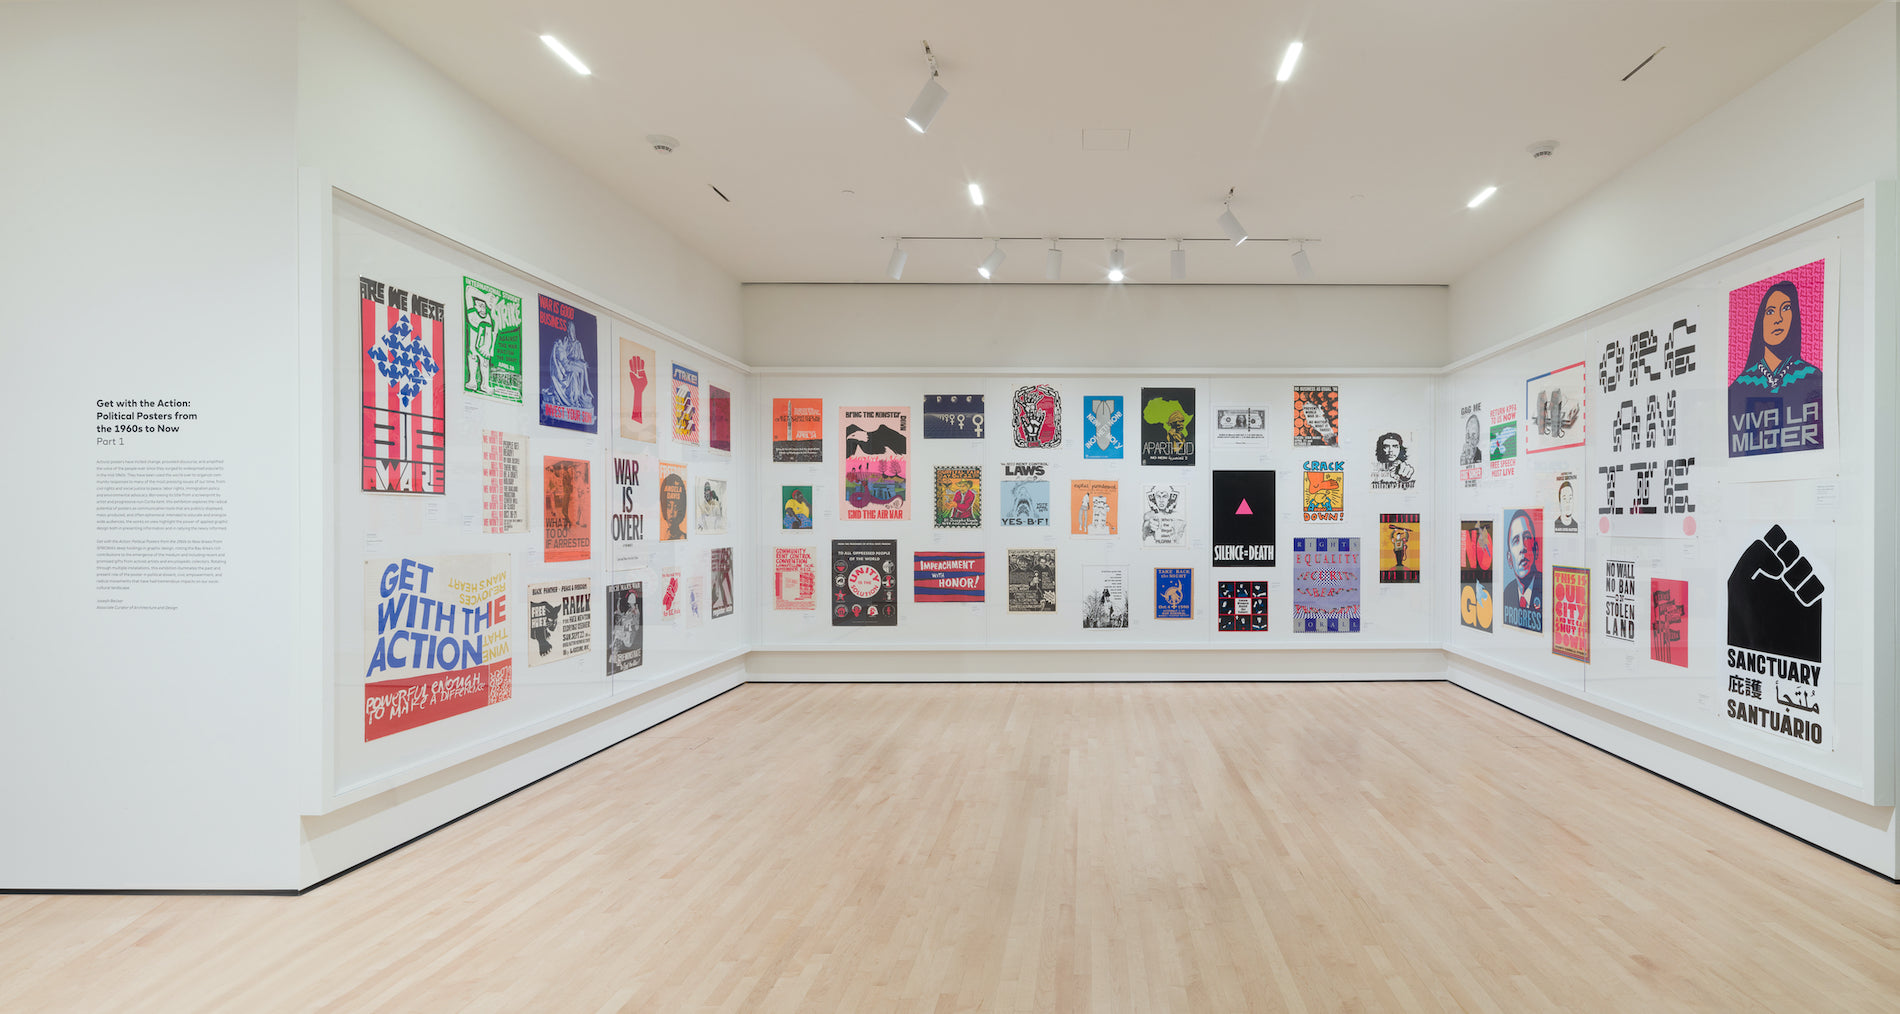 Get With the Action: Political Posters from the 1960s to Now at SFMOMA, Sep 16, 2017 - Apr 8, 2018. Photo © Katherine Du Tiel